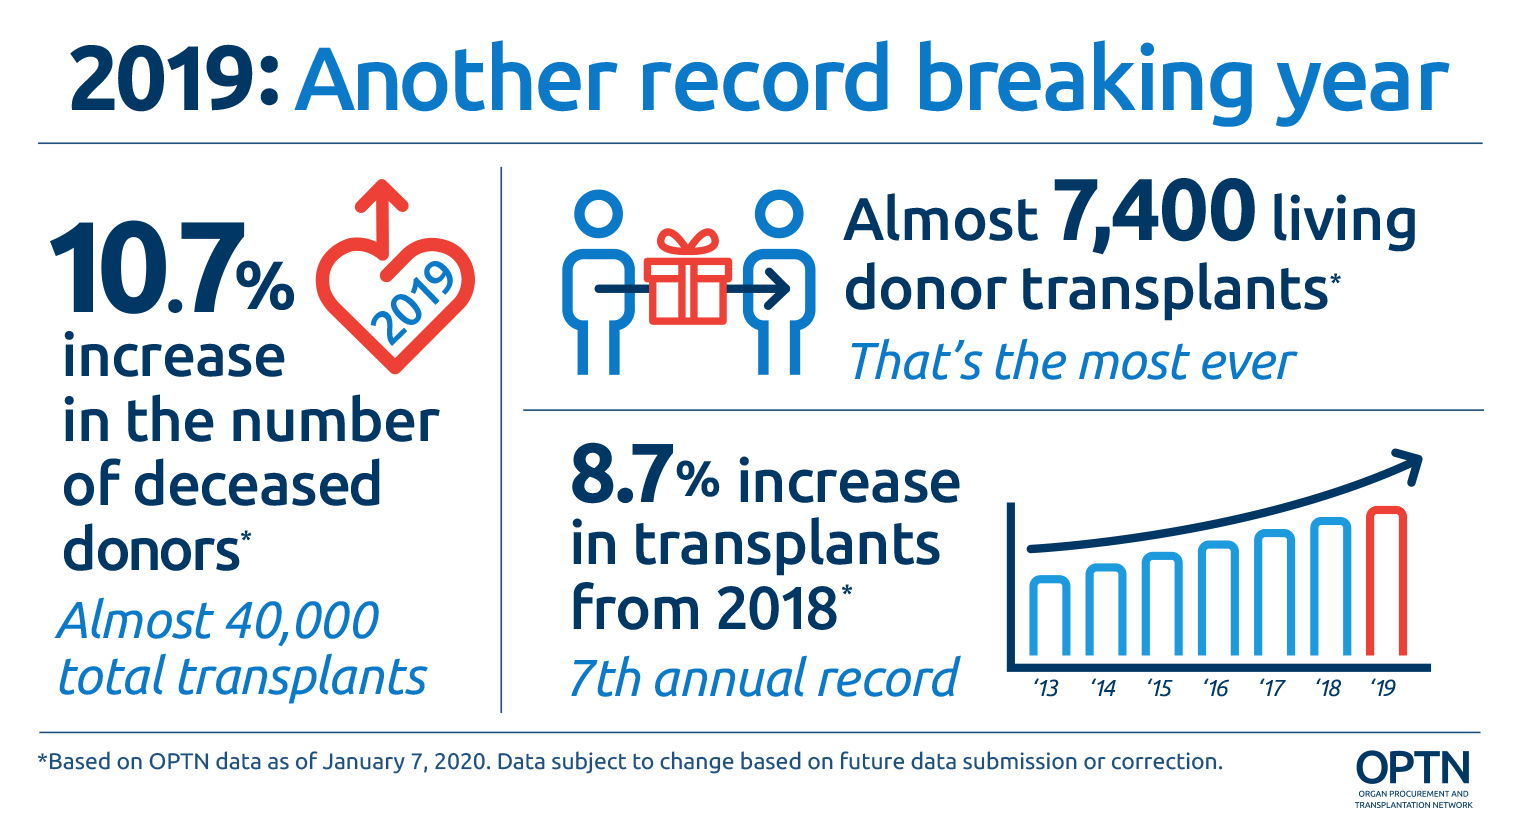 2019 record number of lives saved. 10.7 percent increase in the number of deceased donors - almost 40,000 total transplants. Almost 7,400 living donor transplants - new record number. 8.7 percent increase in transplants from 2018 - 7th year of increase. Based on OPTN data as of January 7, 2020. Data subject to change based on future data submission or correction.